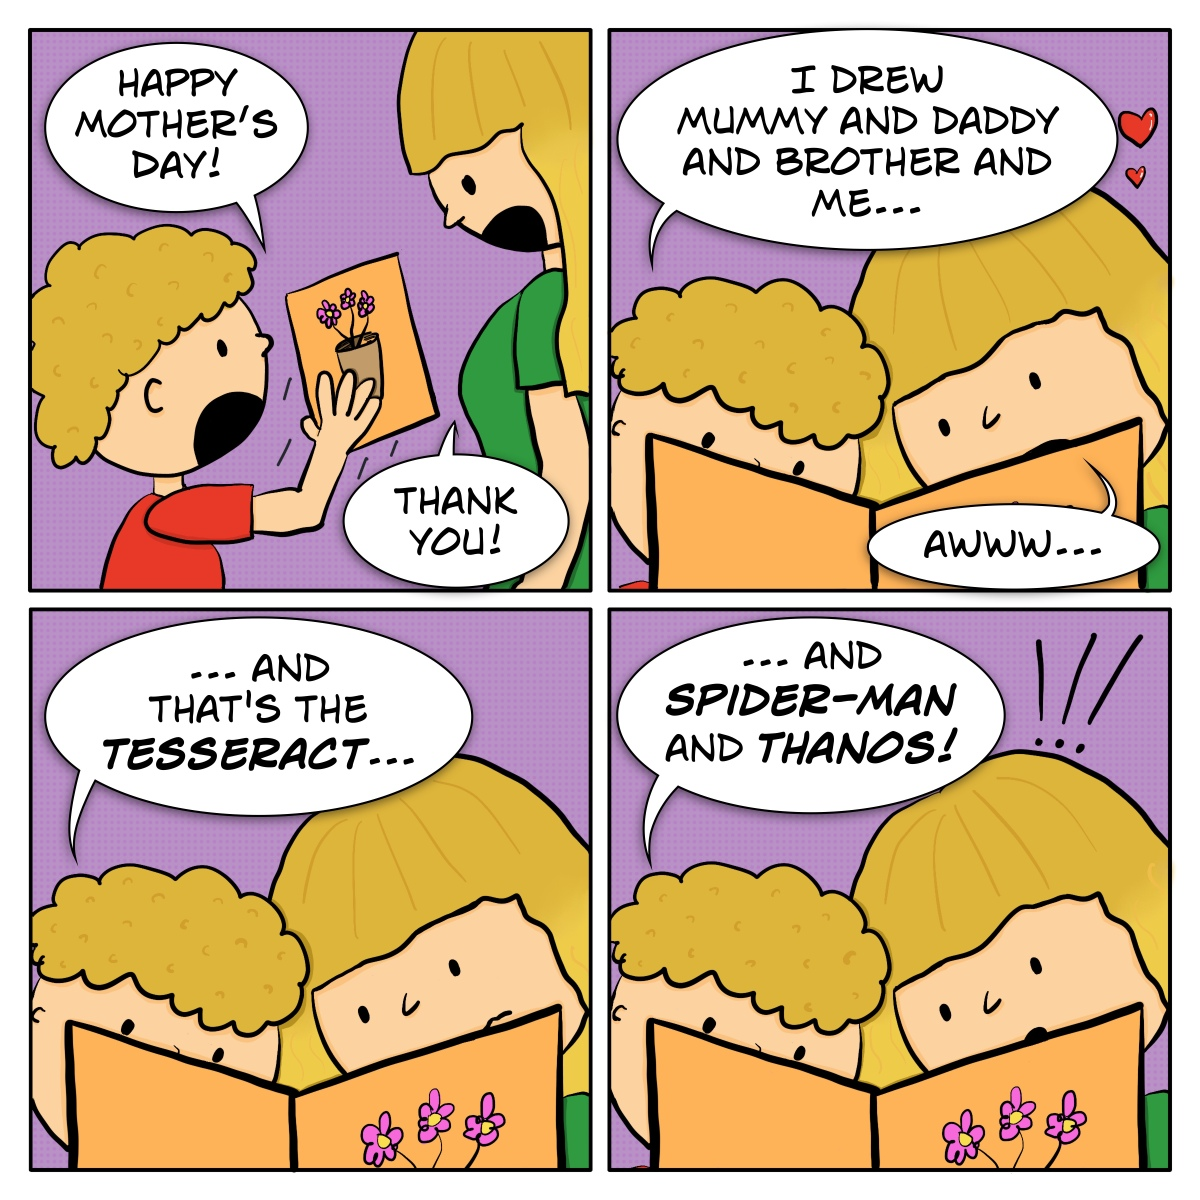 Comic of a kid giving their mother a Mother's Day card, in which there's a drawing of their family, plus Marvel characters